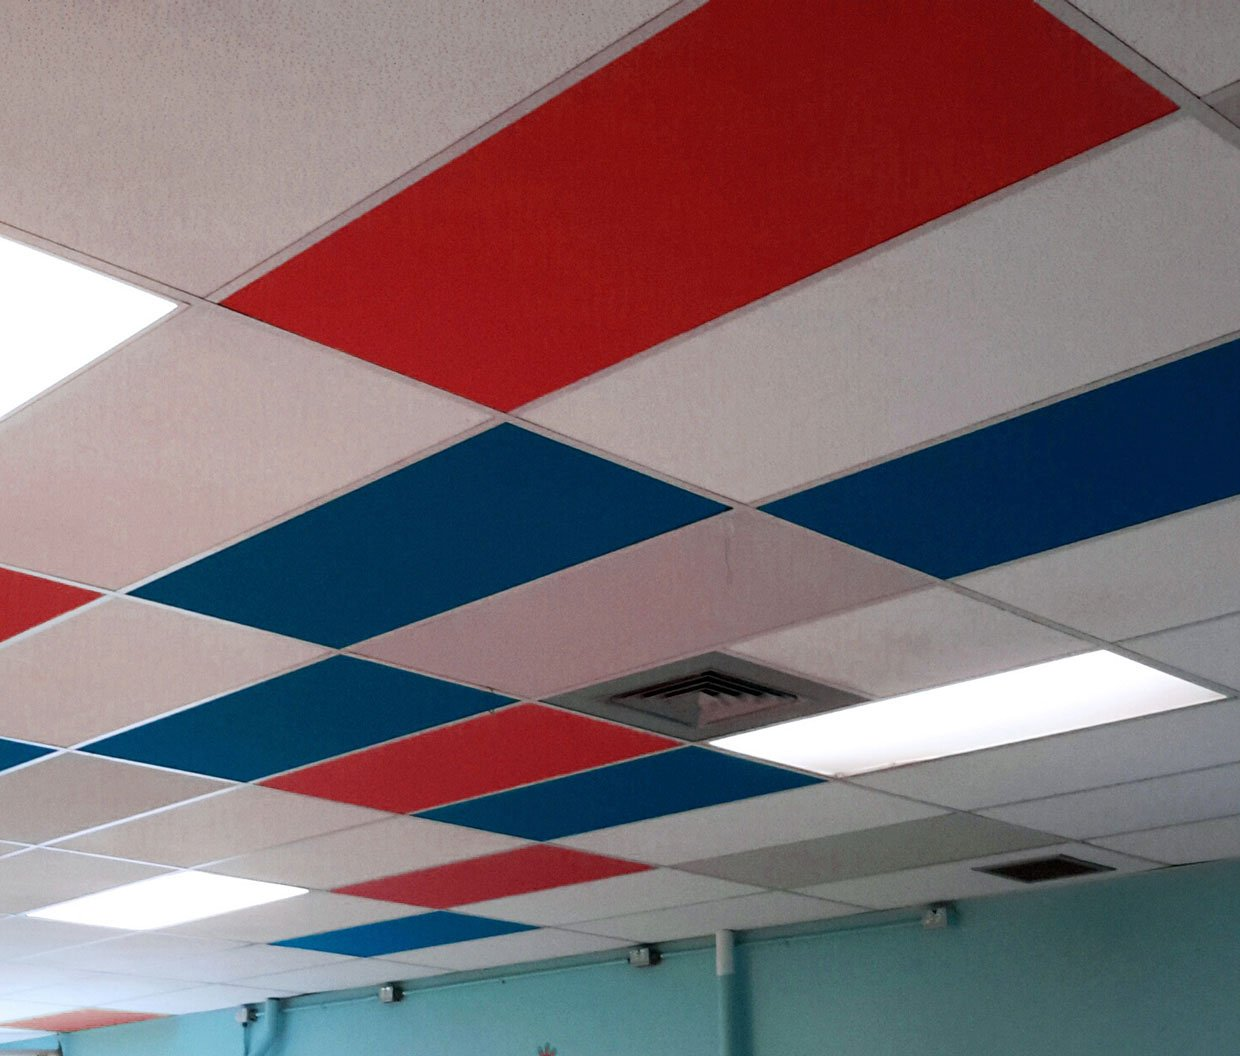 Acoustic ceiling tiles spica acoustic acoustic treatment dalles acoustiques naos absorb dailygadgetfo Gallery